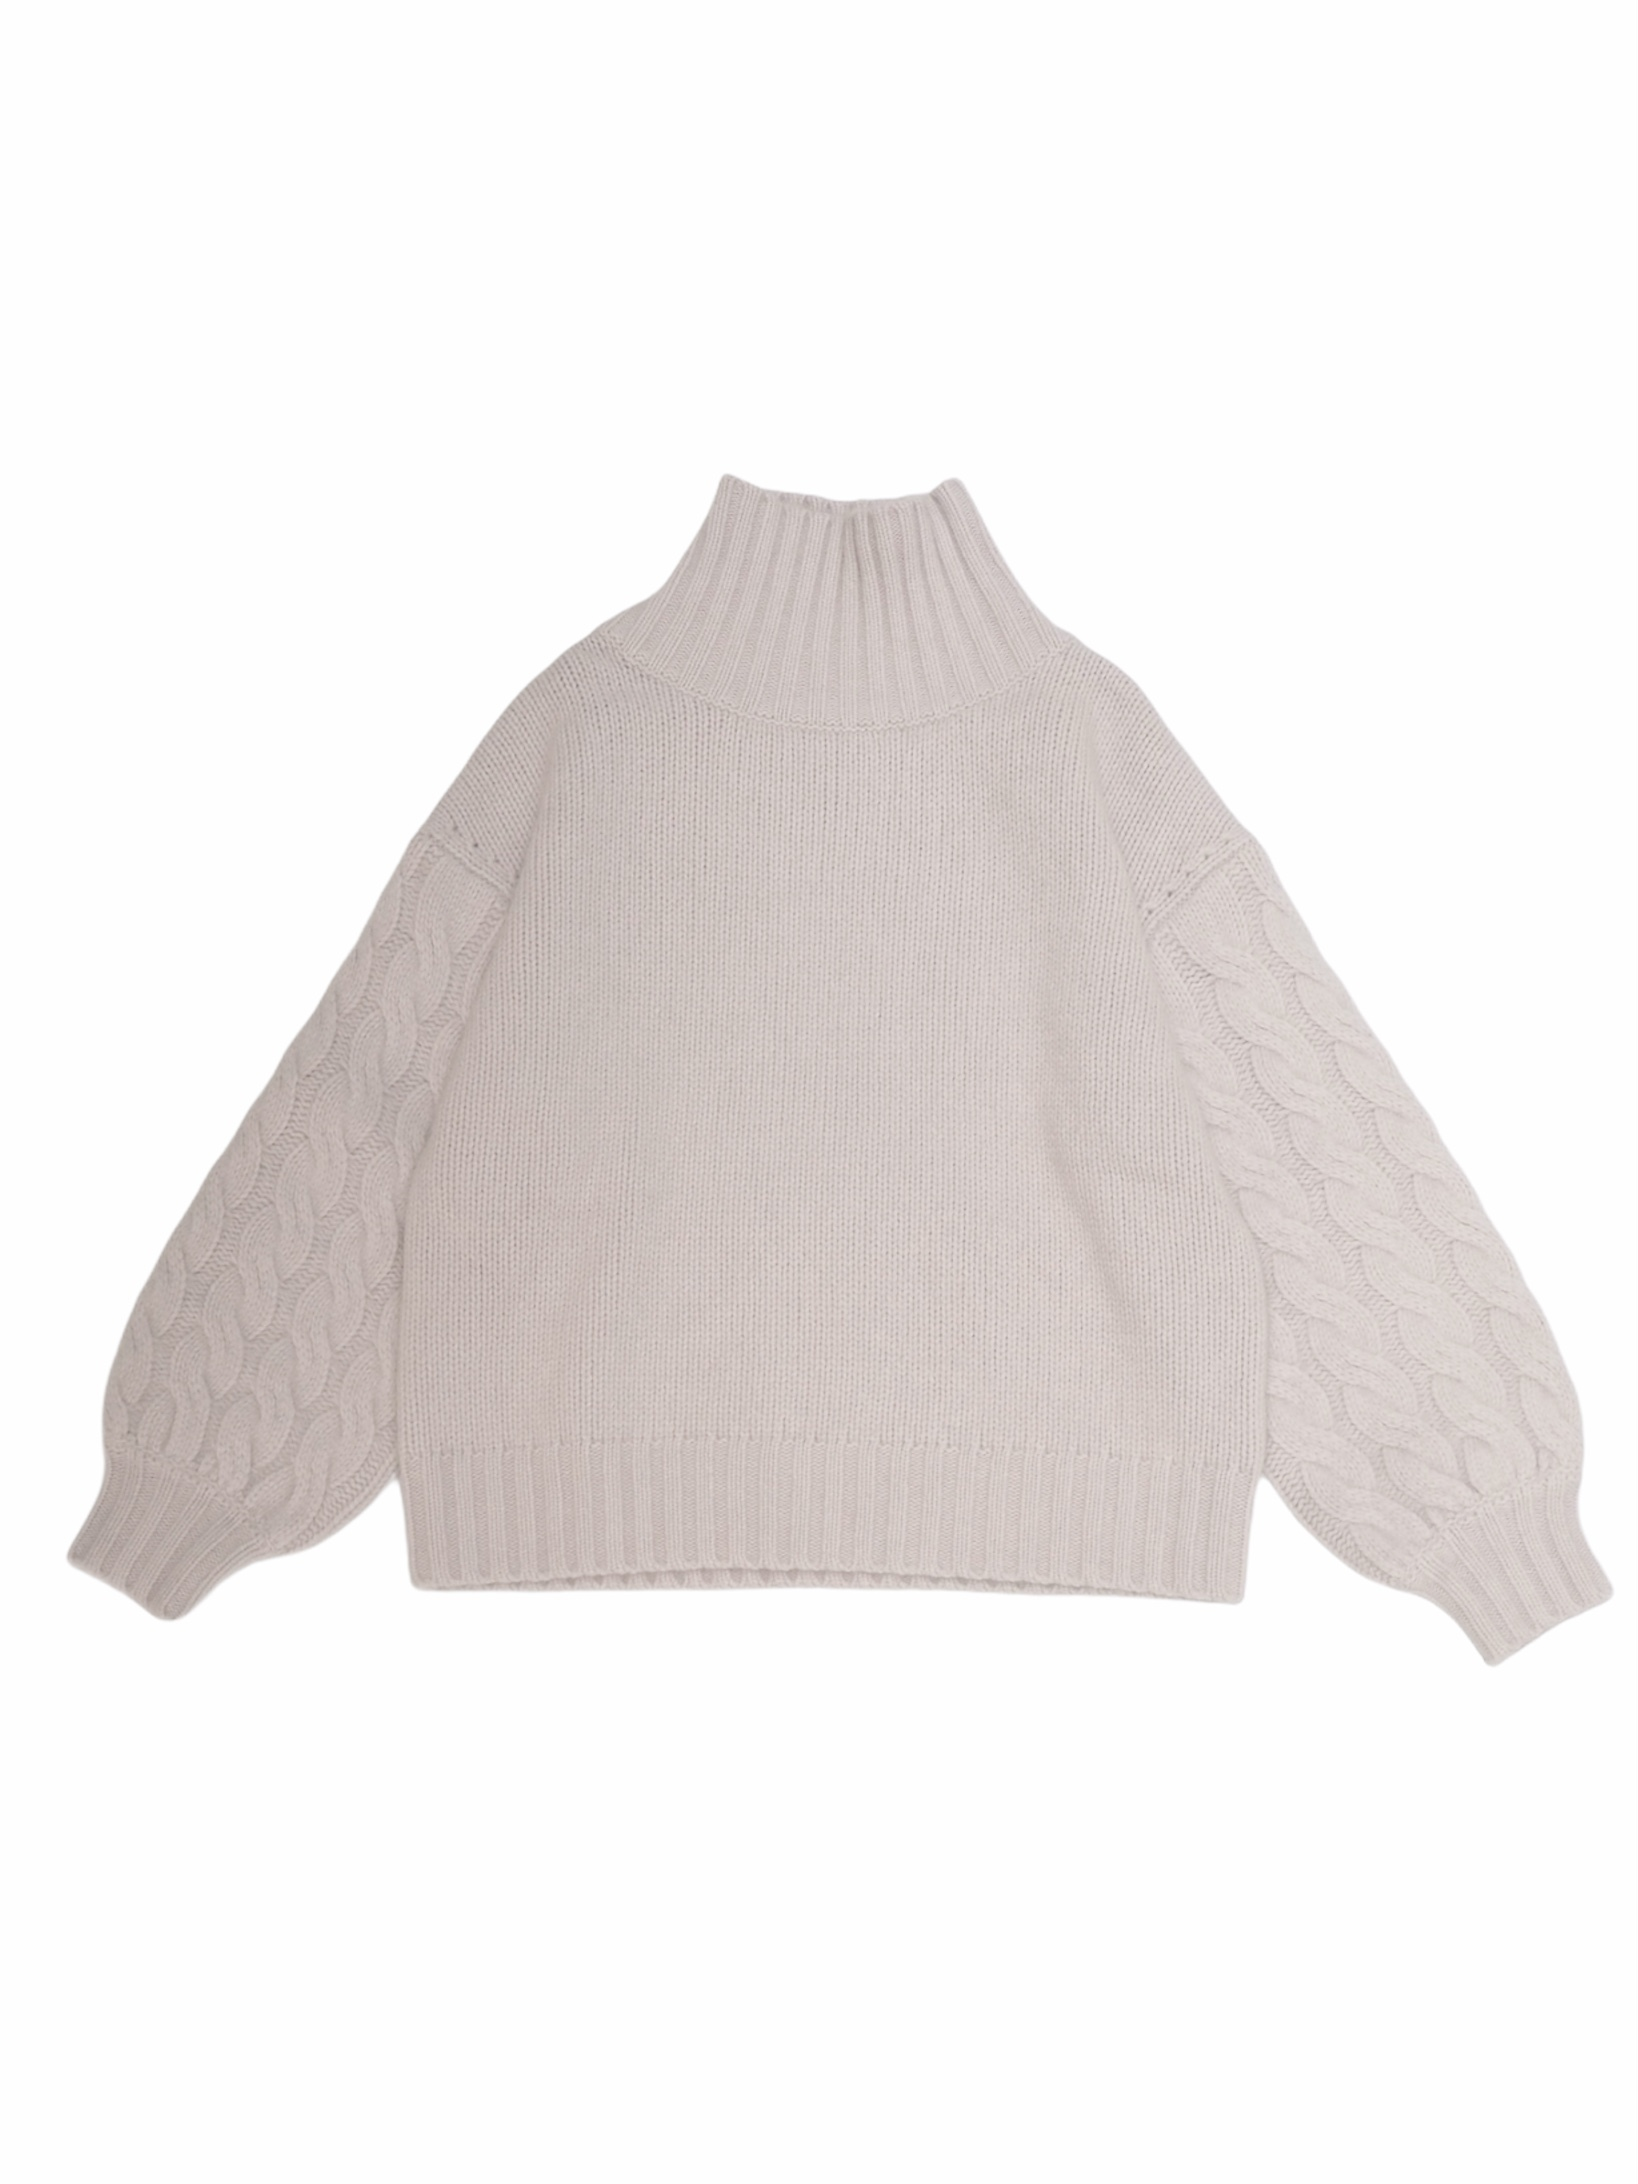 【LILLY LYNQUE】RACCOON HIGH NECK KNIT